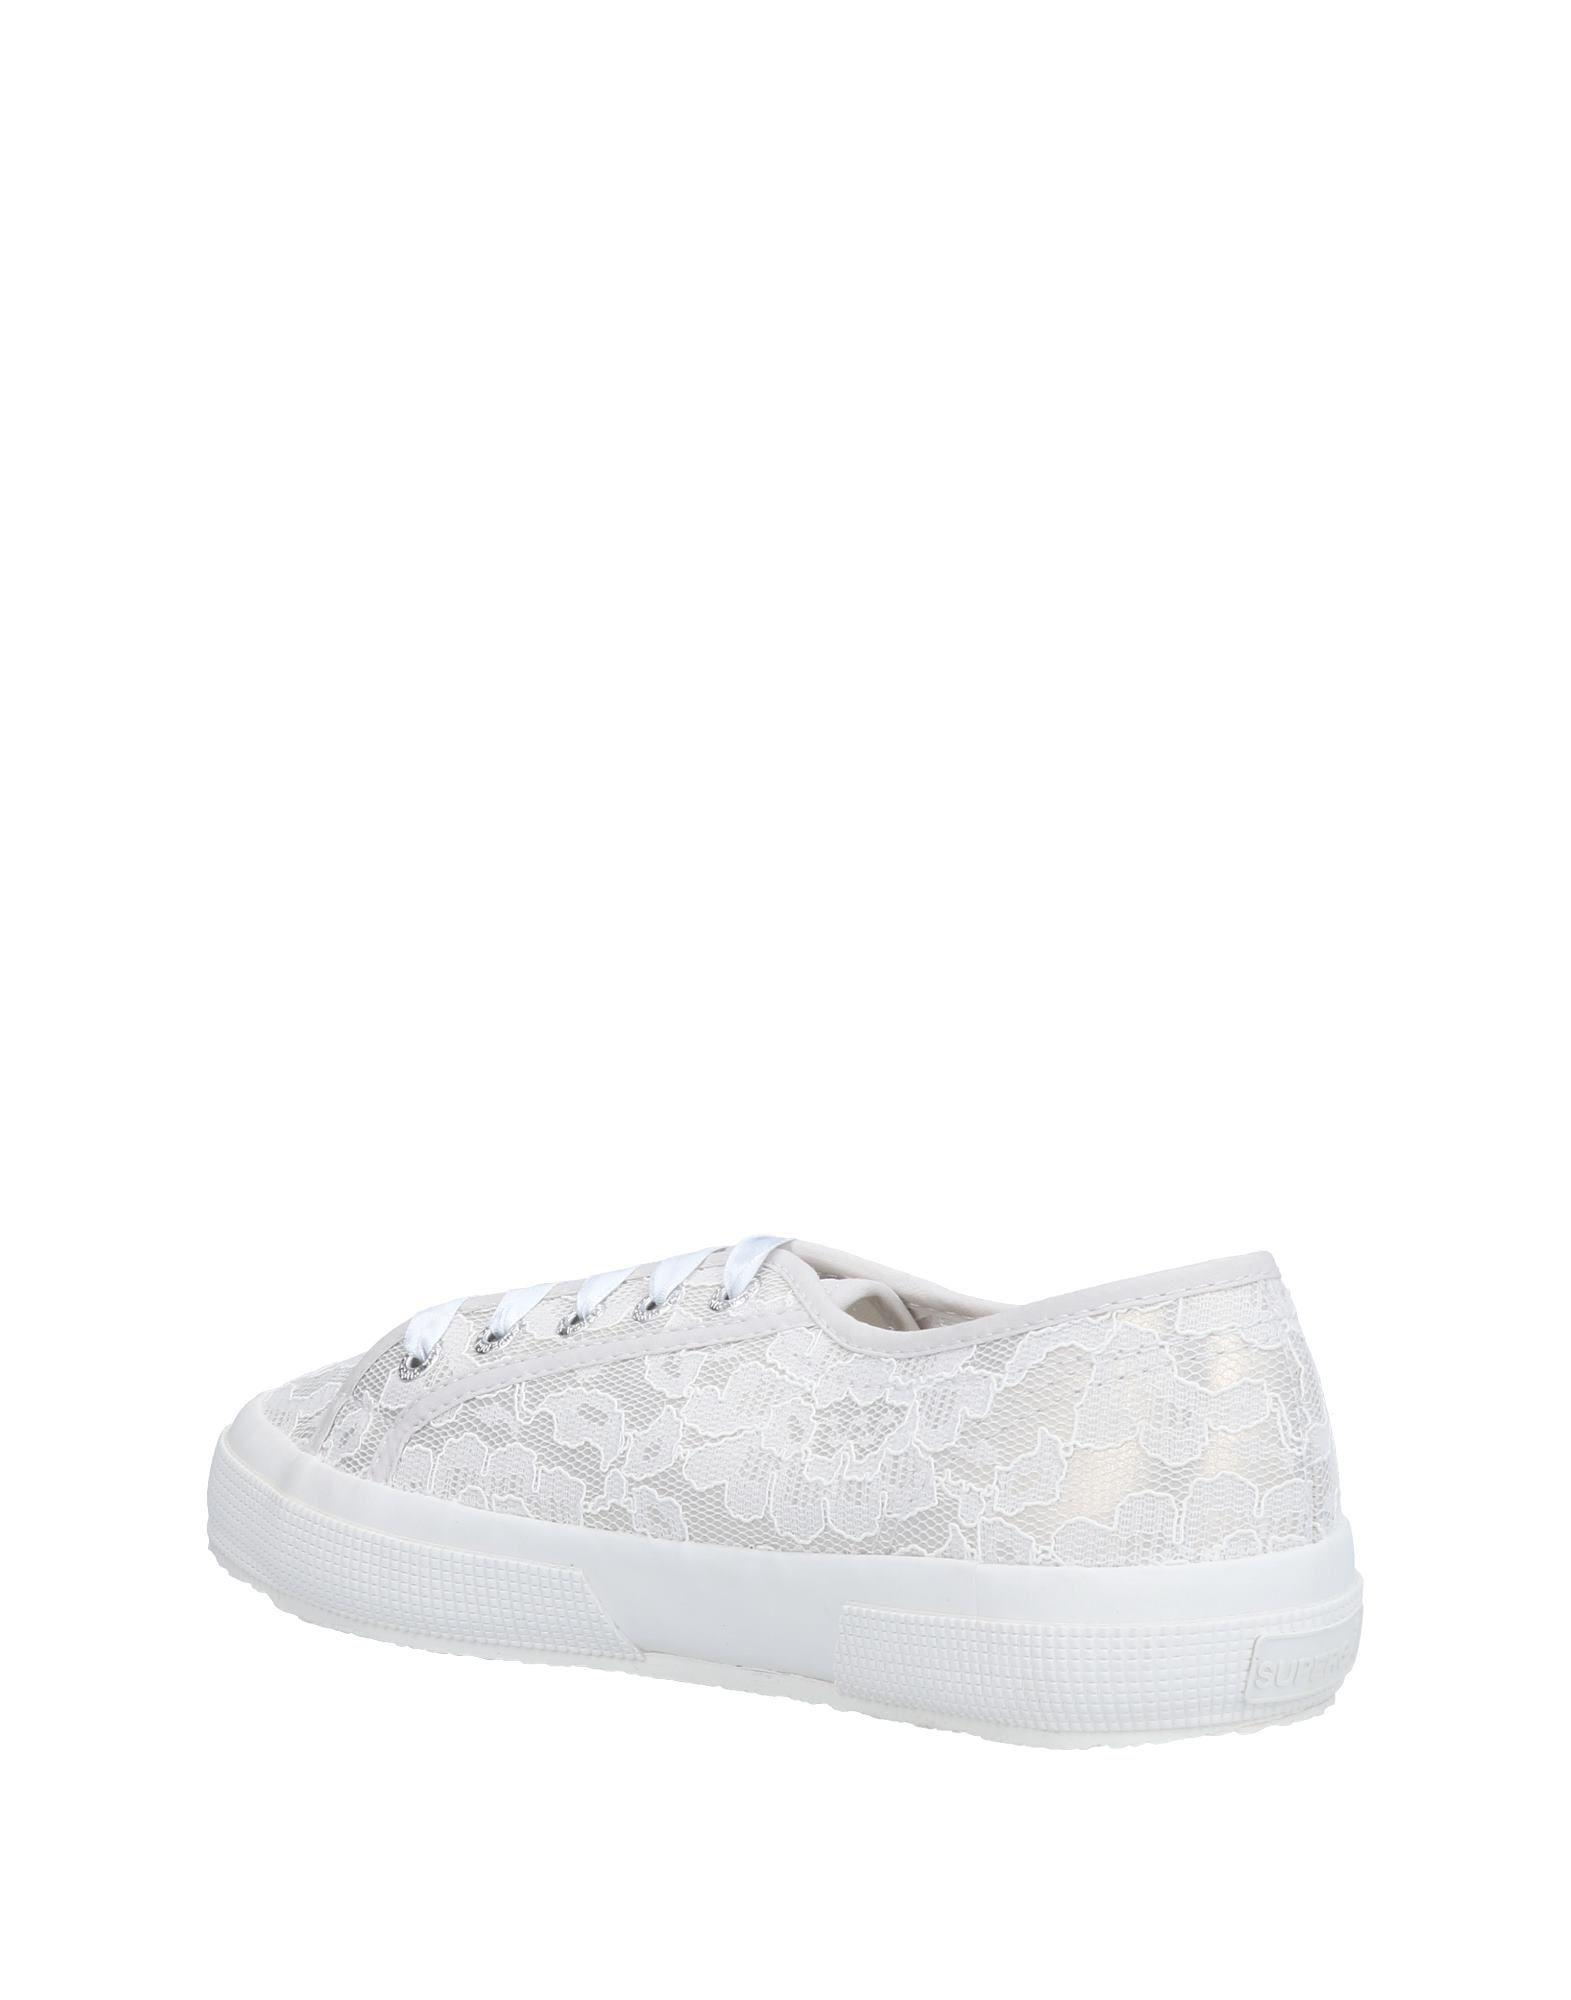 Superga Lace Low-tops & Sneakers in Ivory (White)